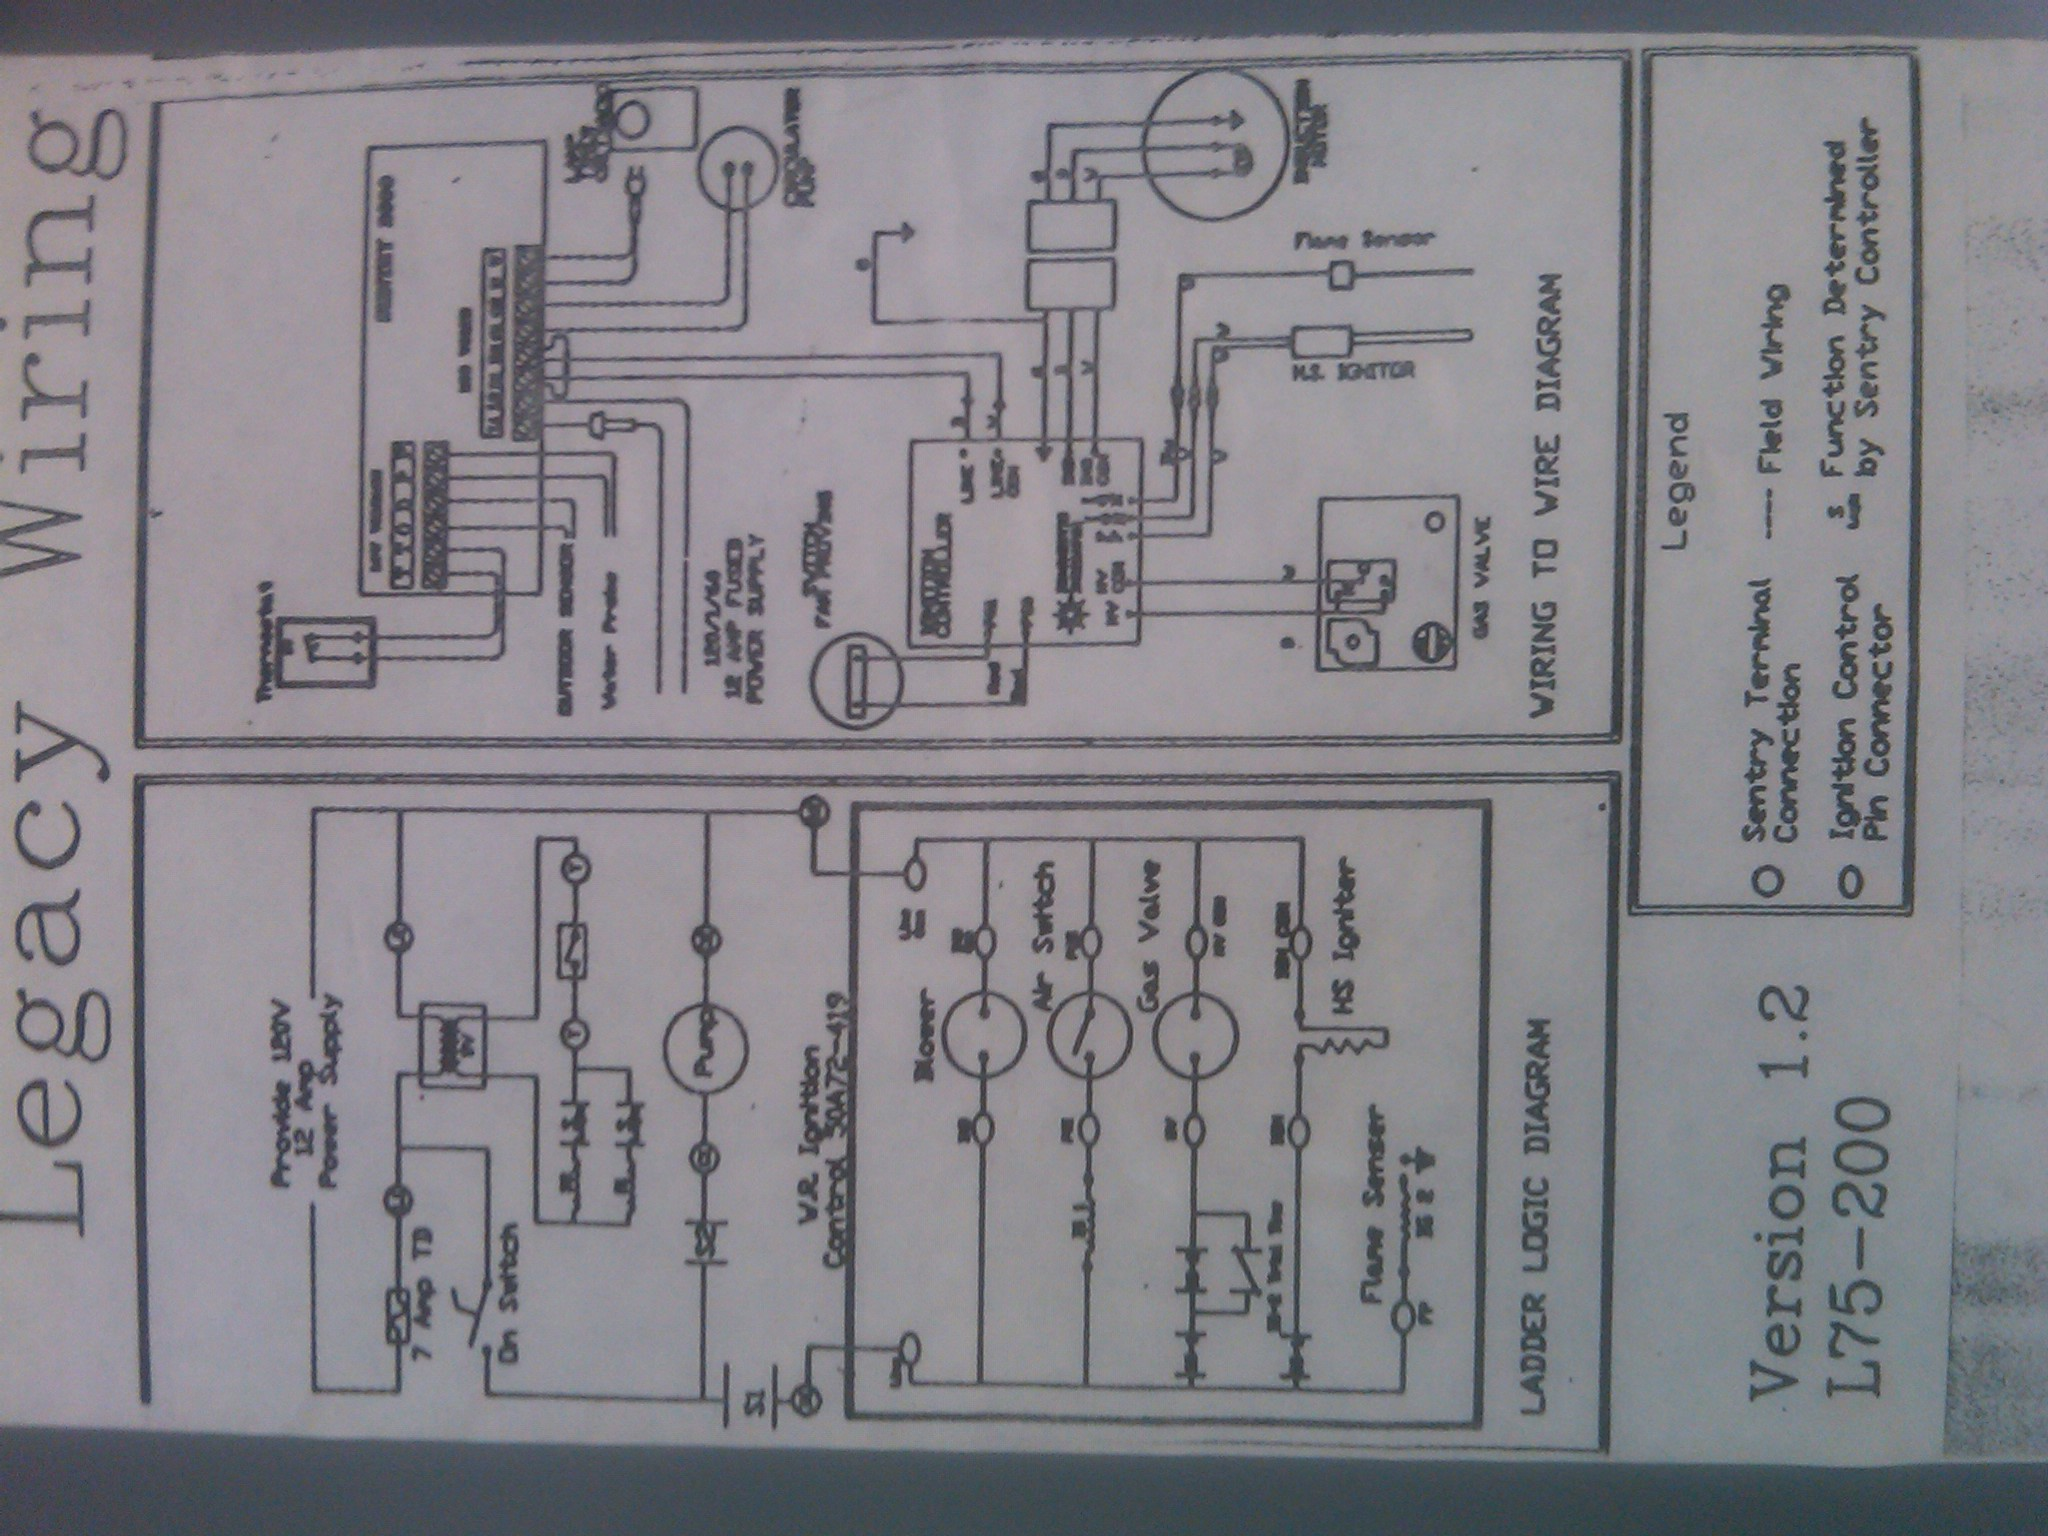 firebird boiler thermostat wiring diagram home electrical circuit old house oil